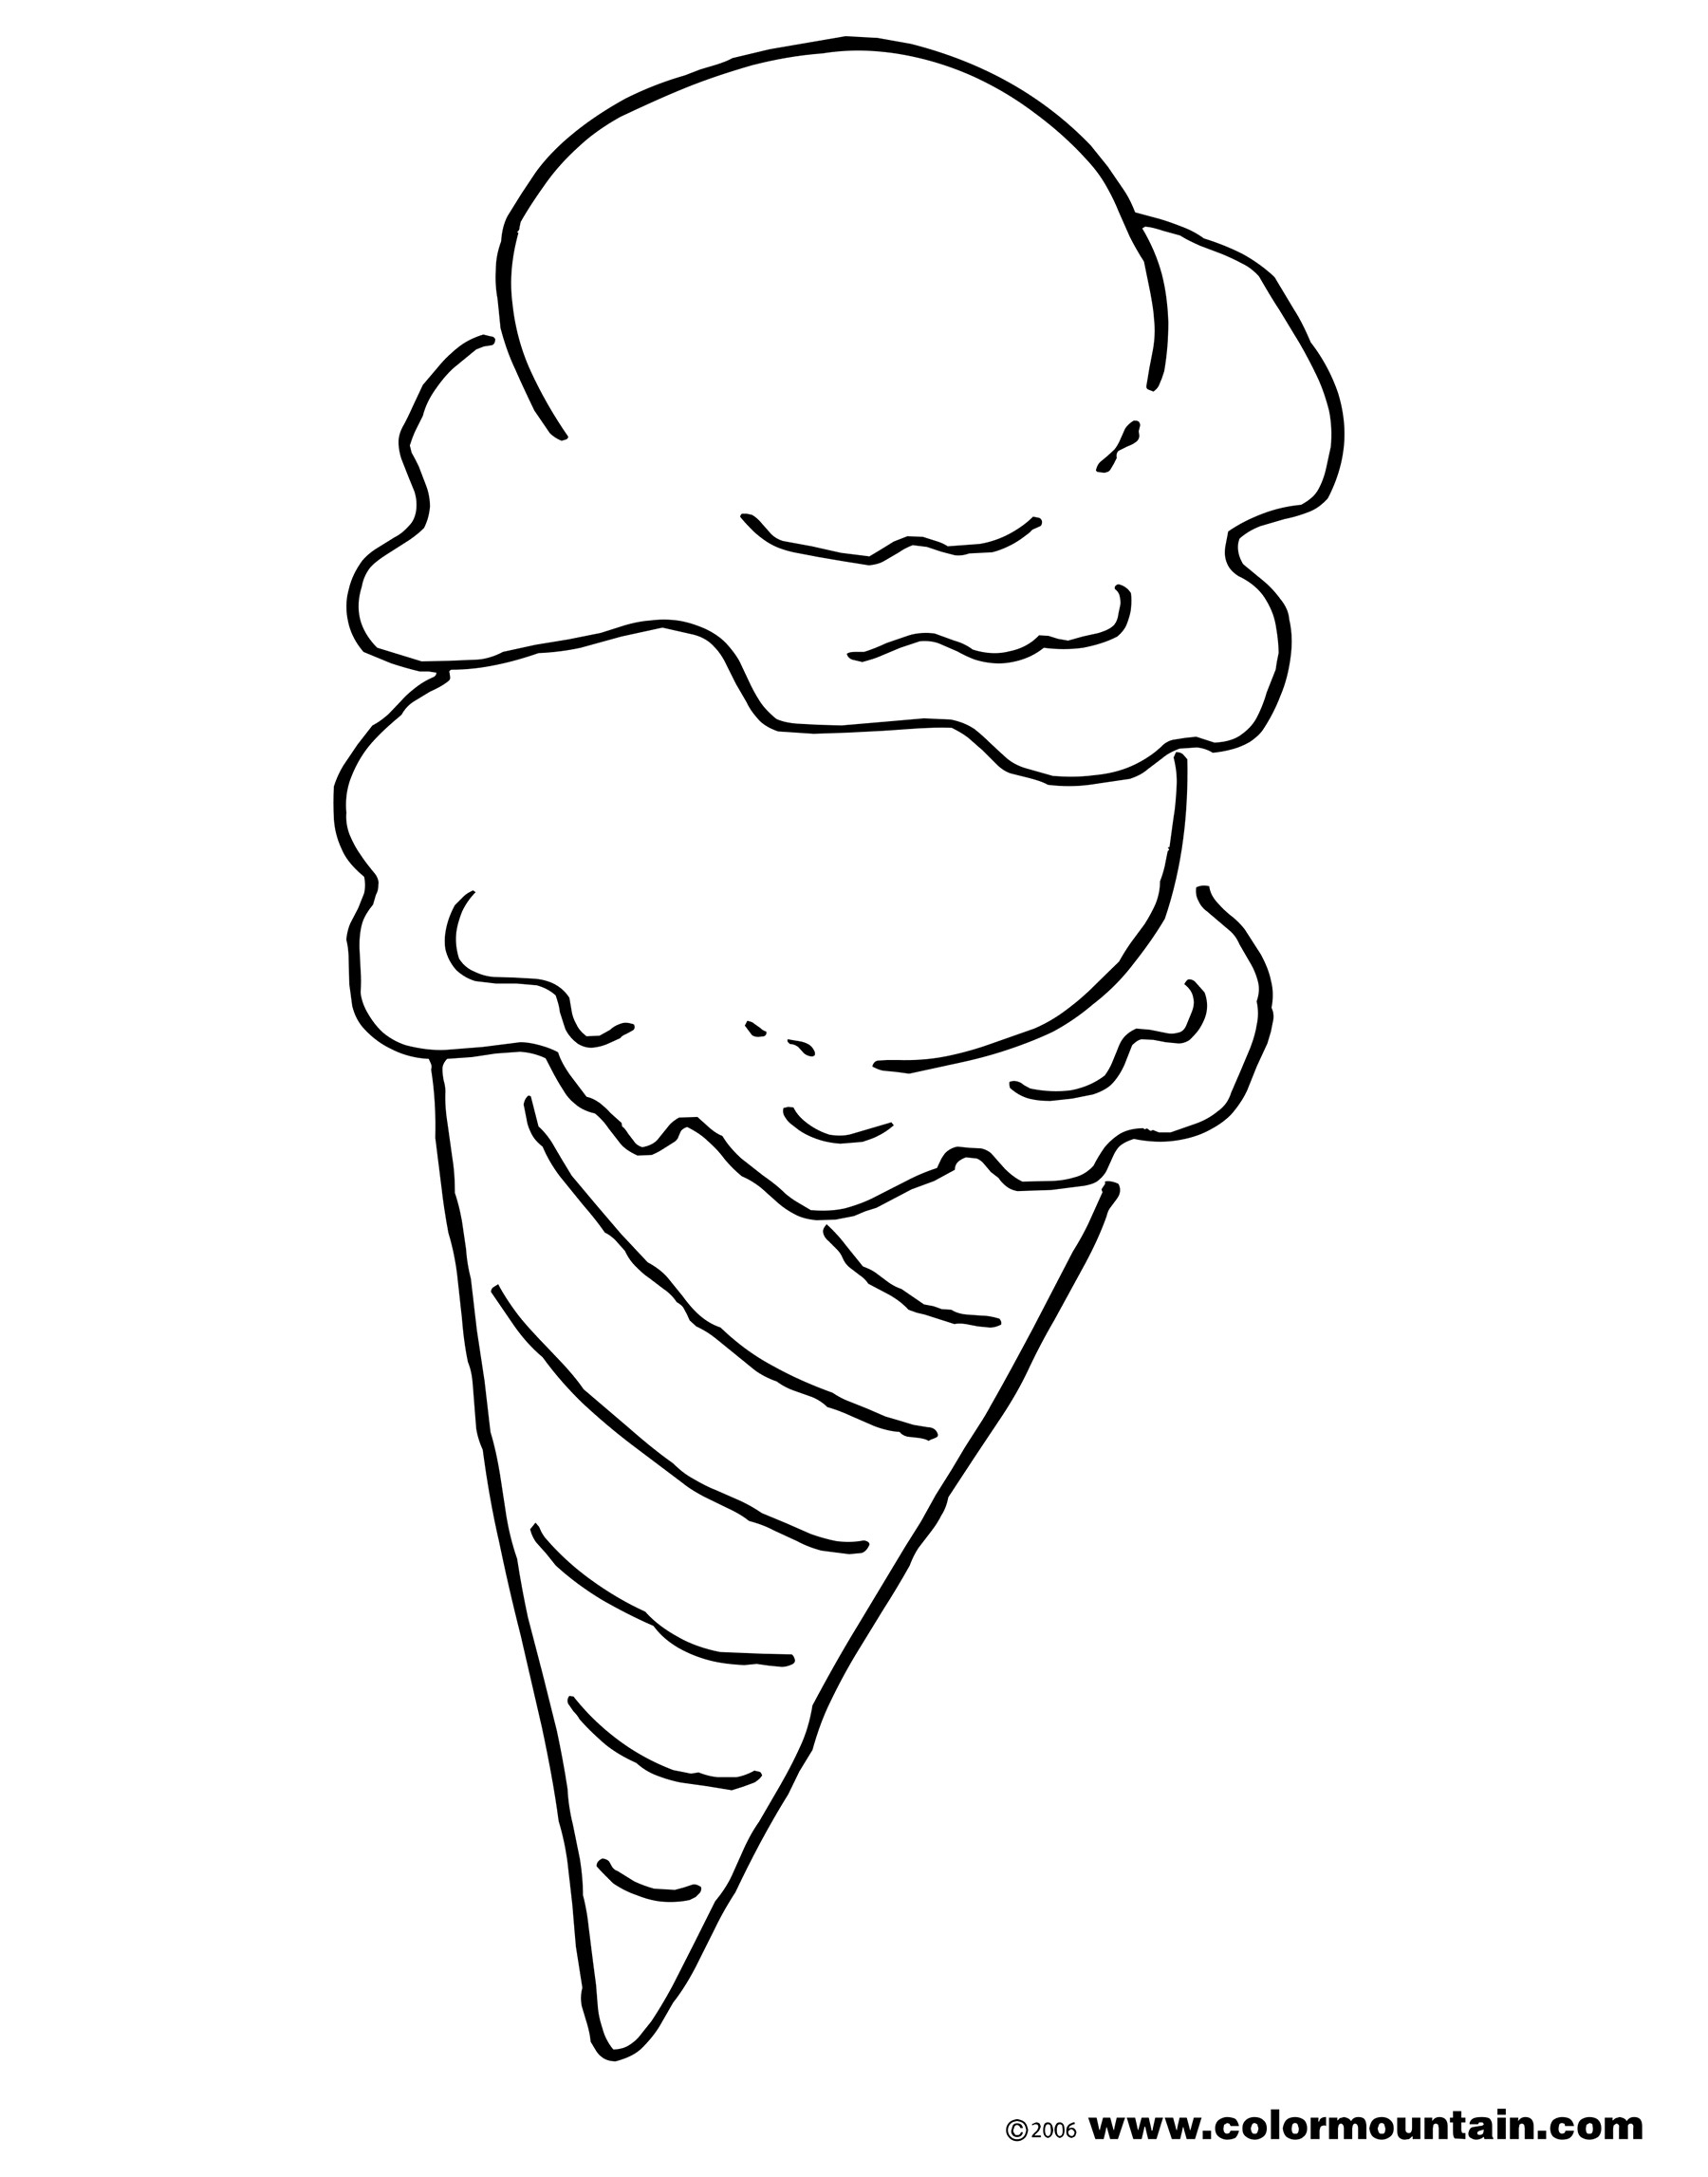 Ice Cream clipart top Coloring page cone cream Activity